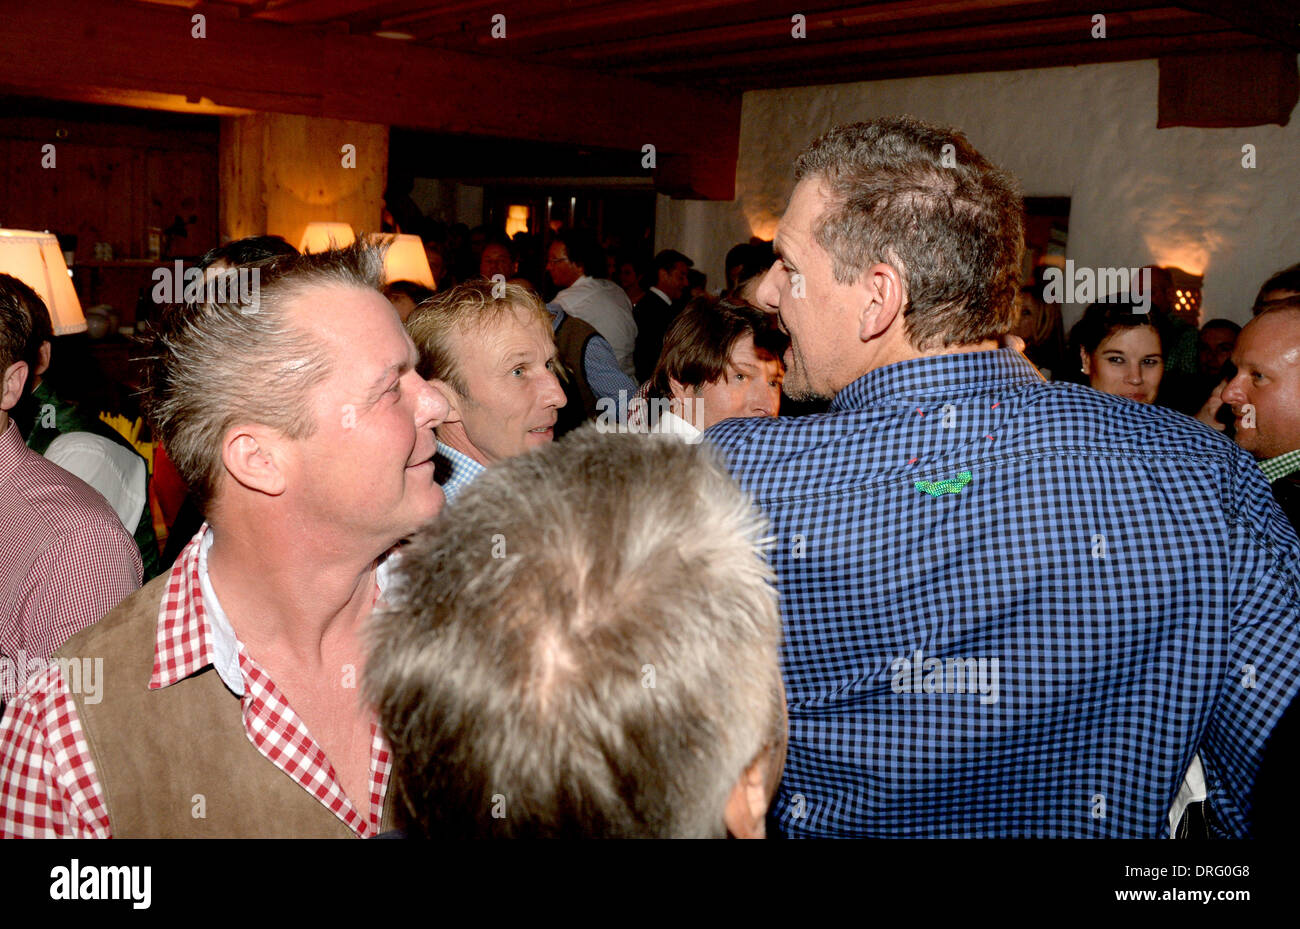 Kitzbuehel, Austria. 24th Jan, 2014. Actor Ralf Moeller (R) and Marcus Prinz von Anhalt are pictured at the Bavarian veal sausage party in the Stanglwirt bar near Kitzbuehel, Austria, 24 January 2014. Many celebrities came for the annual Austrian downhill ski race Hahnenkamm race in worldfamous skiing location. Photo: Felix Hoerhager/dpa/Alamy Live News - Stock Image